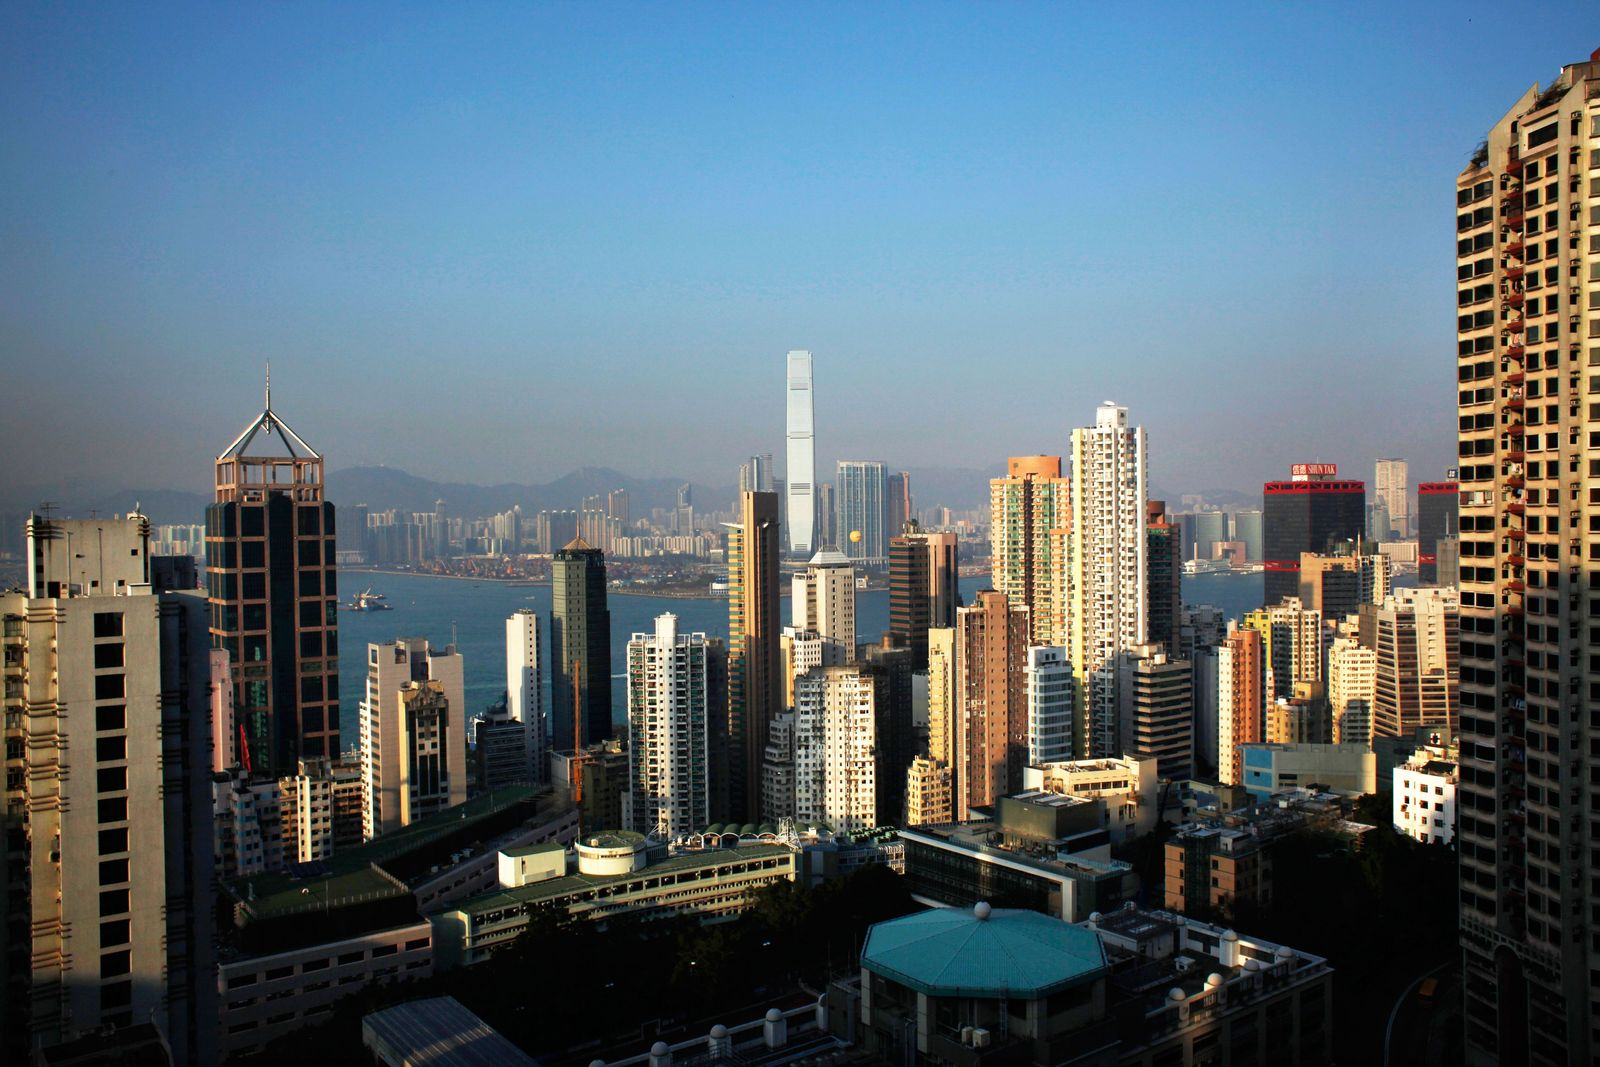 China / Banken-Viertel / Banken / Skyline / Hong Kong